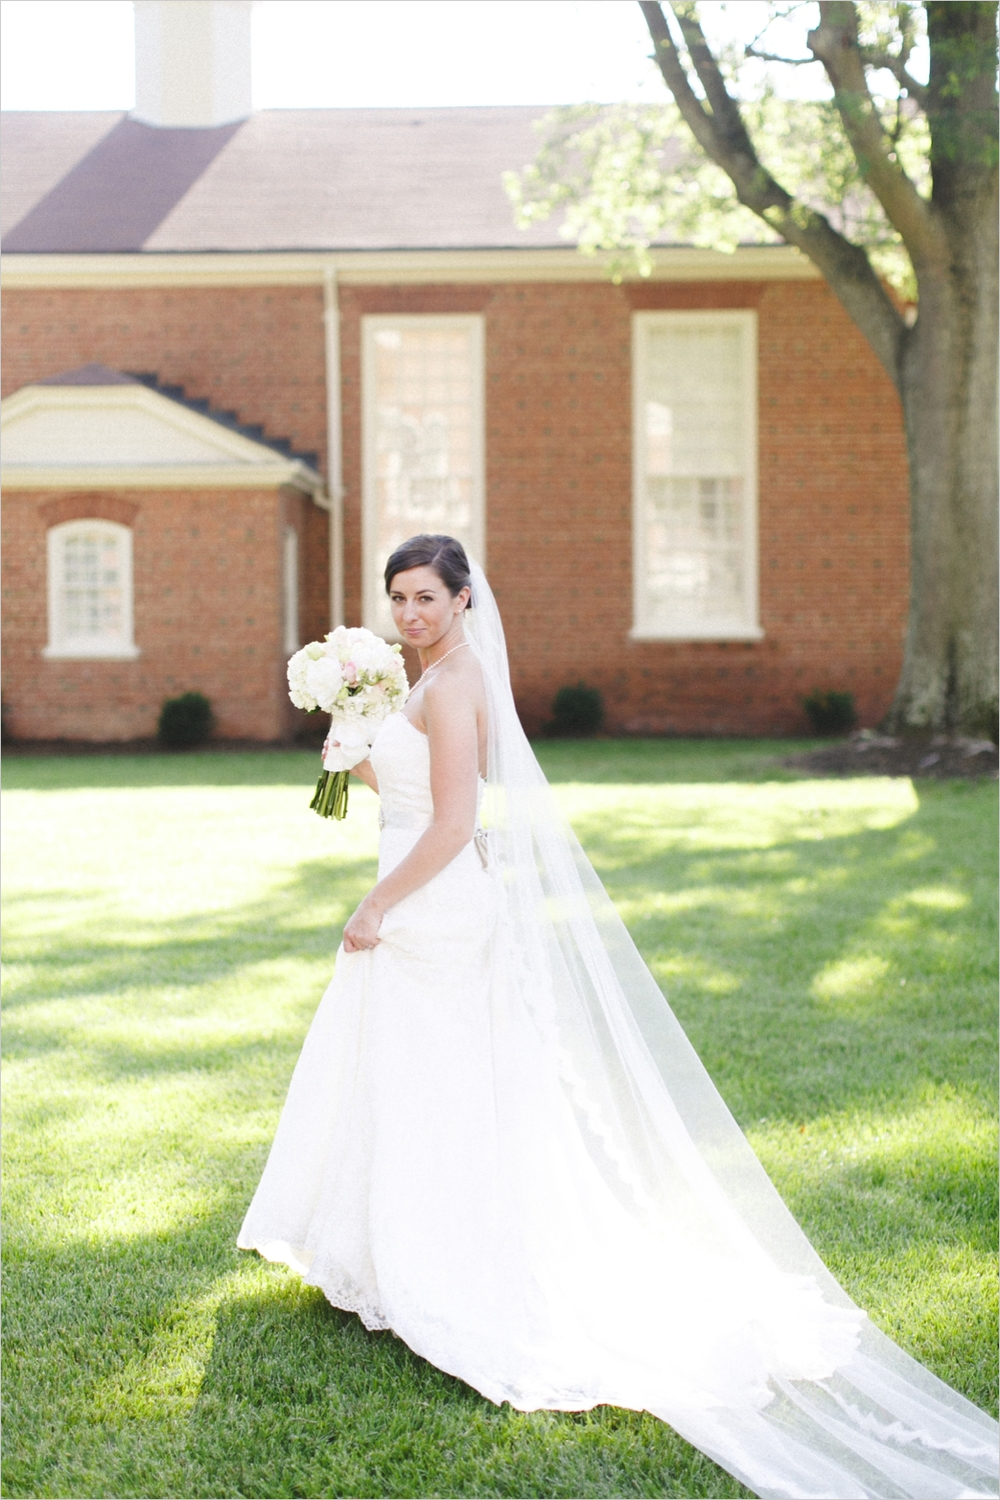 sarah-will-jefferson-hotel-virginia-wedding-photographer_0029